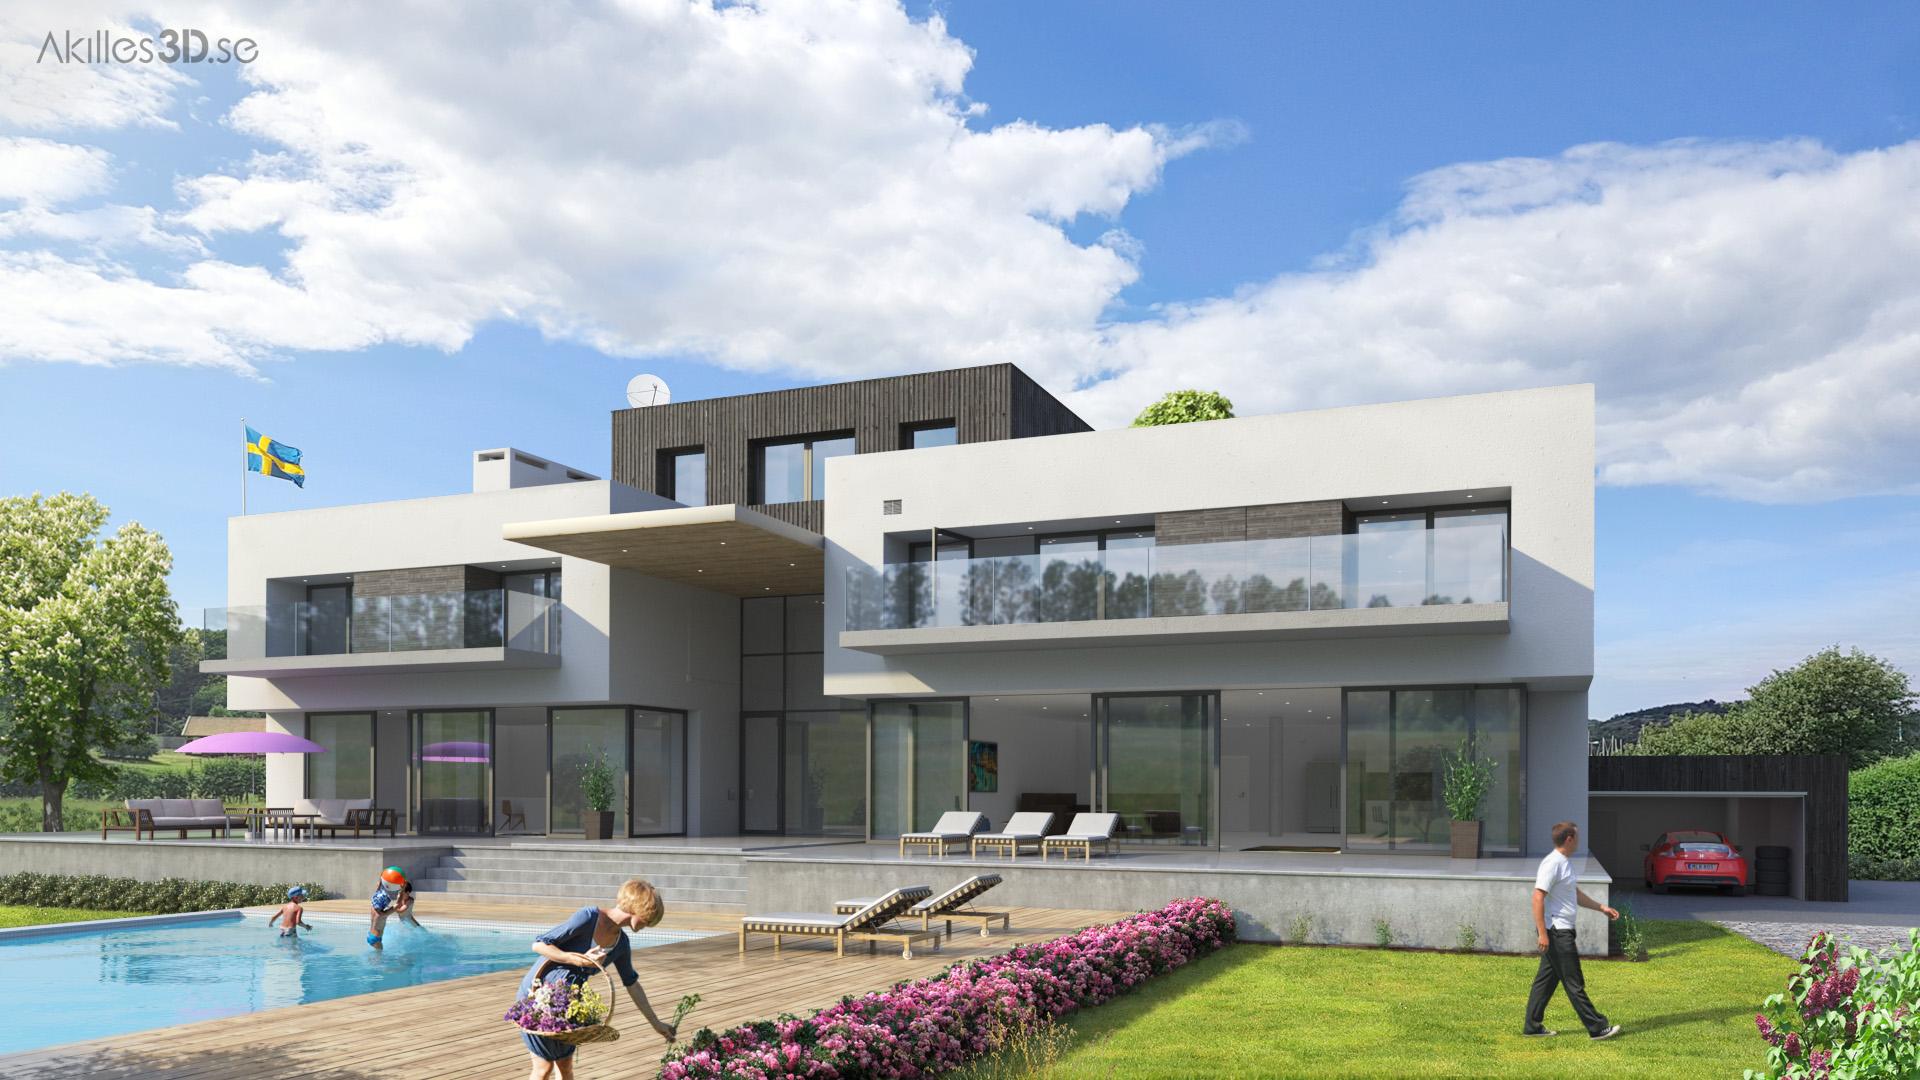 House Lundquist 1 - realistic 3D visualization residence exterior architecture CGI high-end top quality